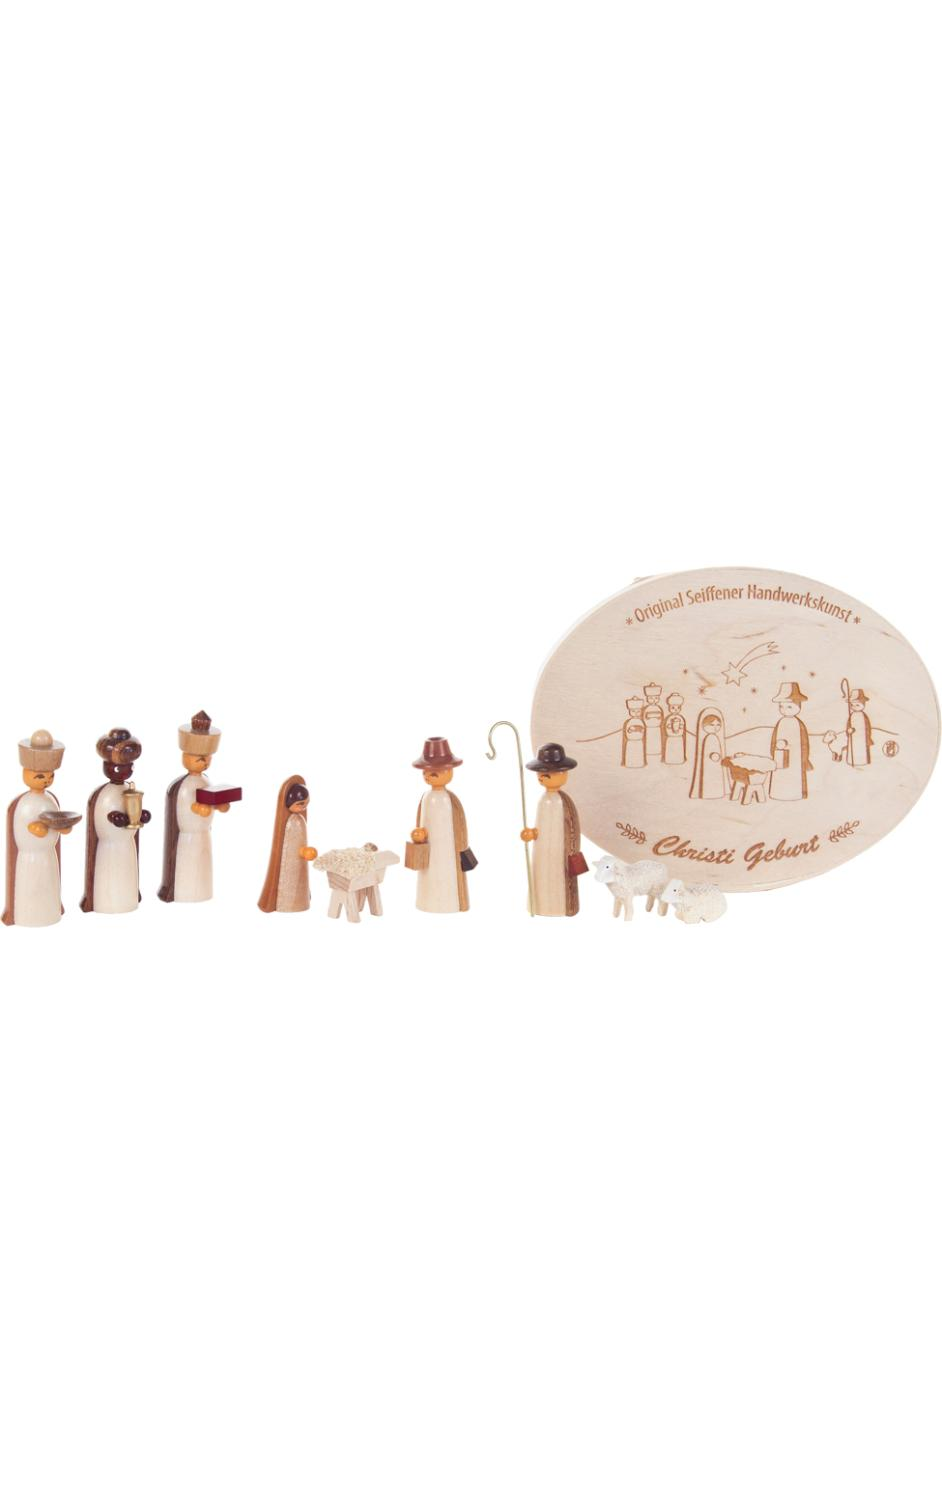 225-263NS - Dregeno Chip Box - Natural Nativity with 3 Wise Men - 2